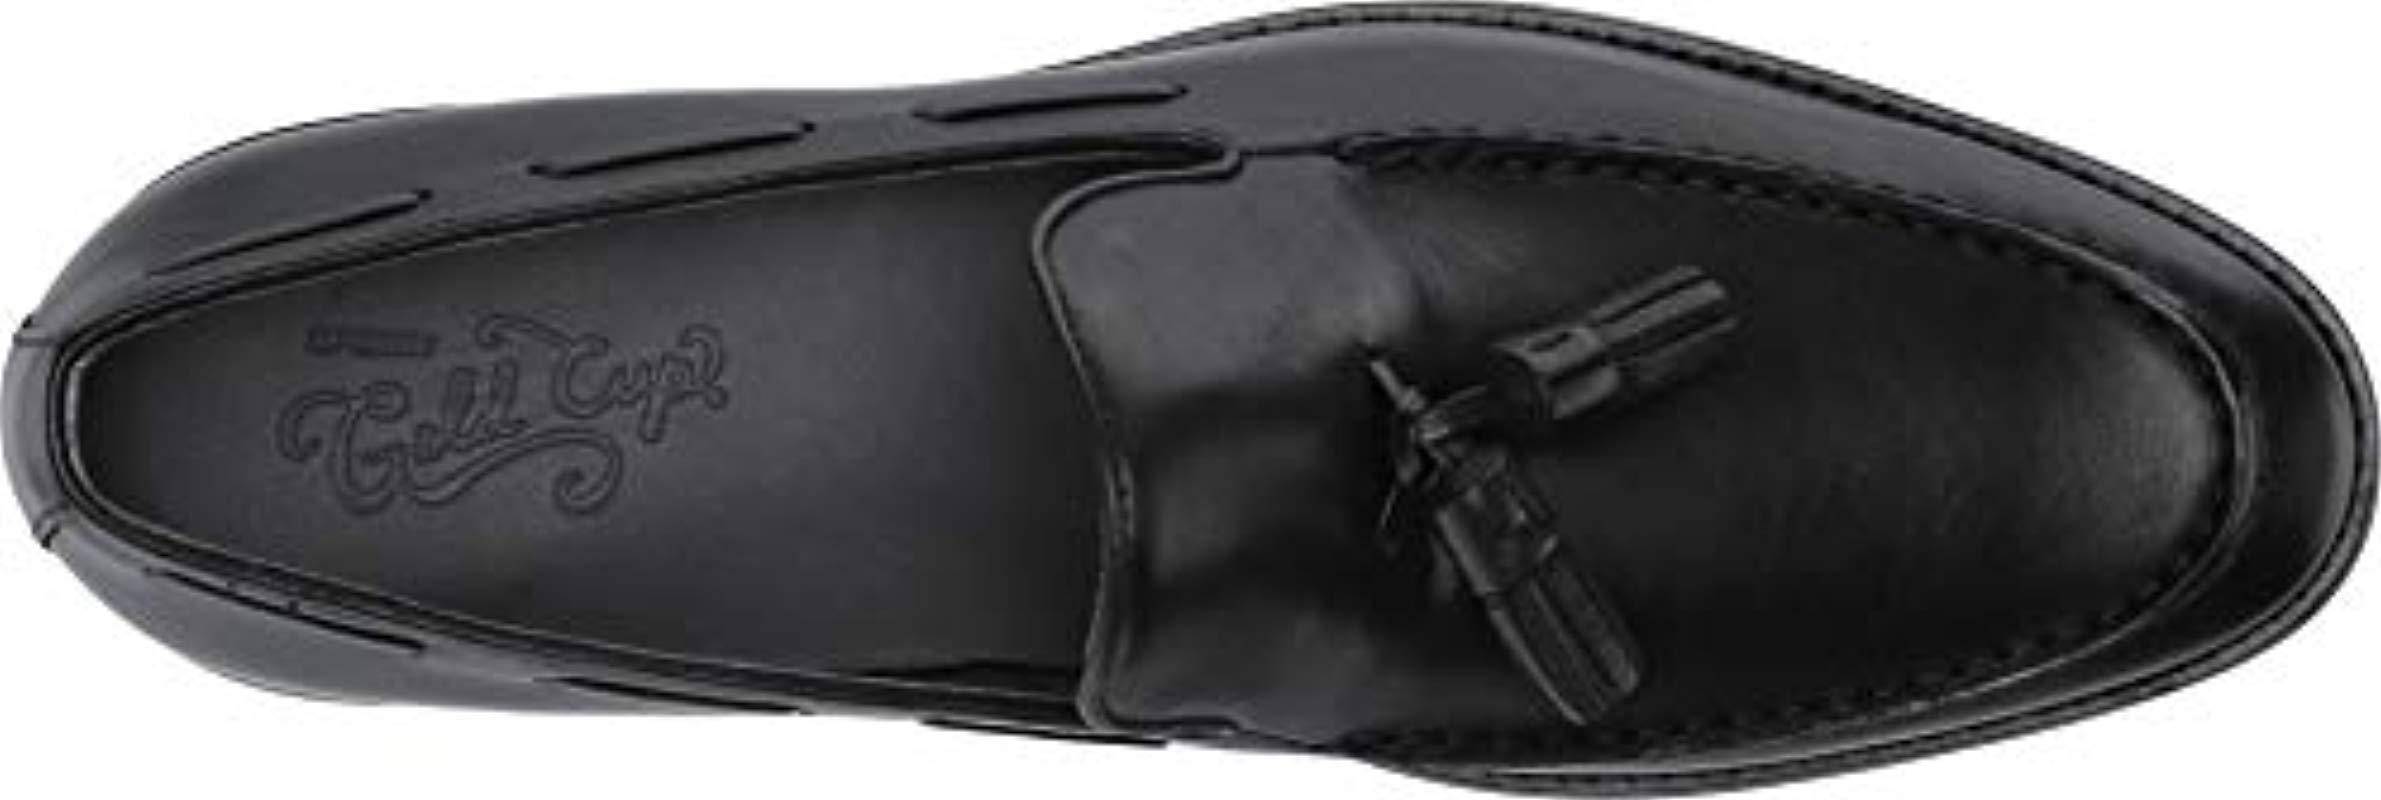 b5632aad0c2 Lyst - Sperry Top-Sider Gold Cup Exeter Tassel Penny Loafer